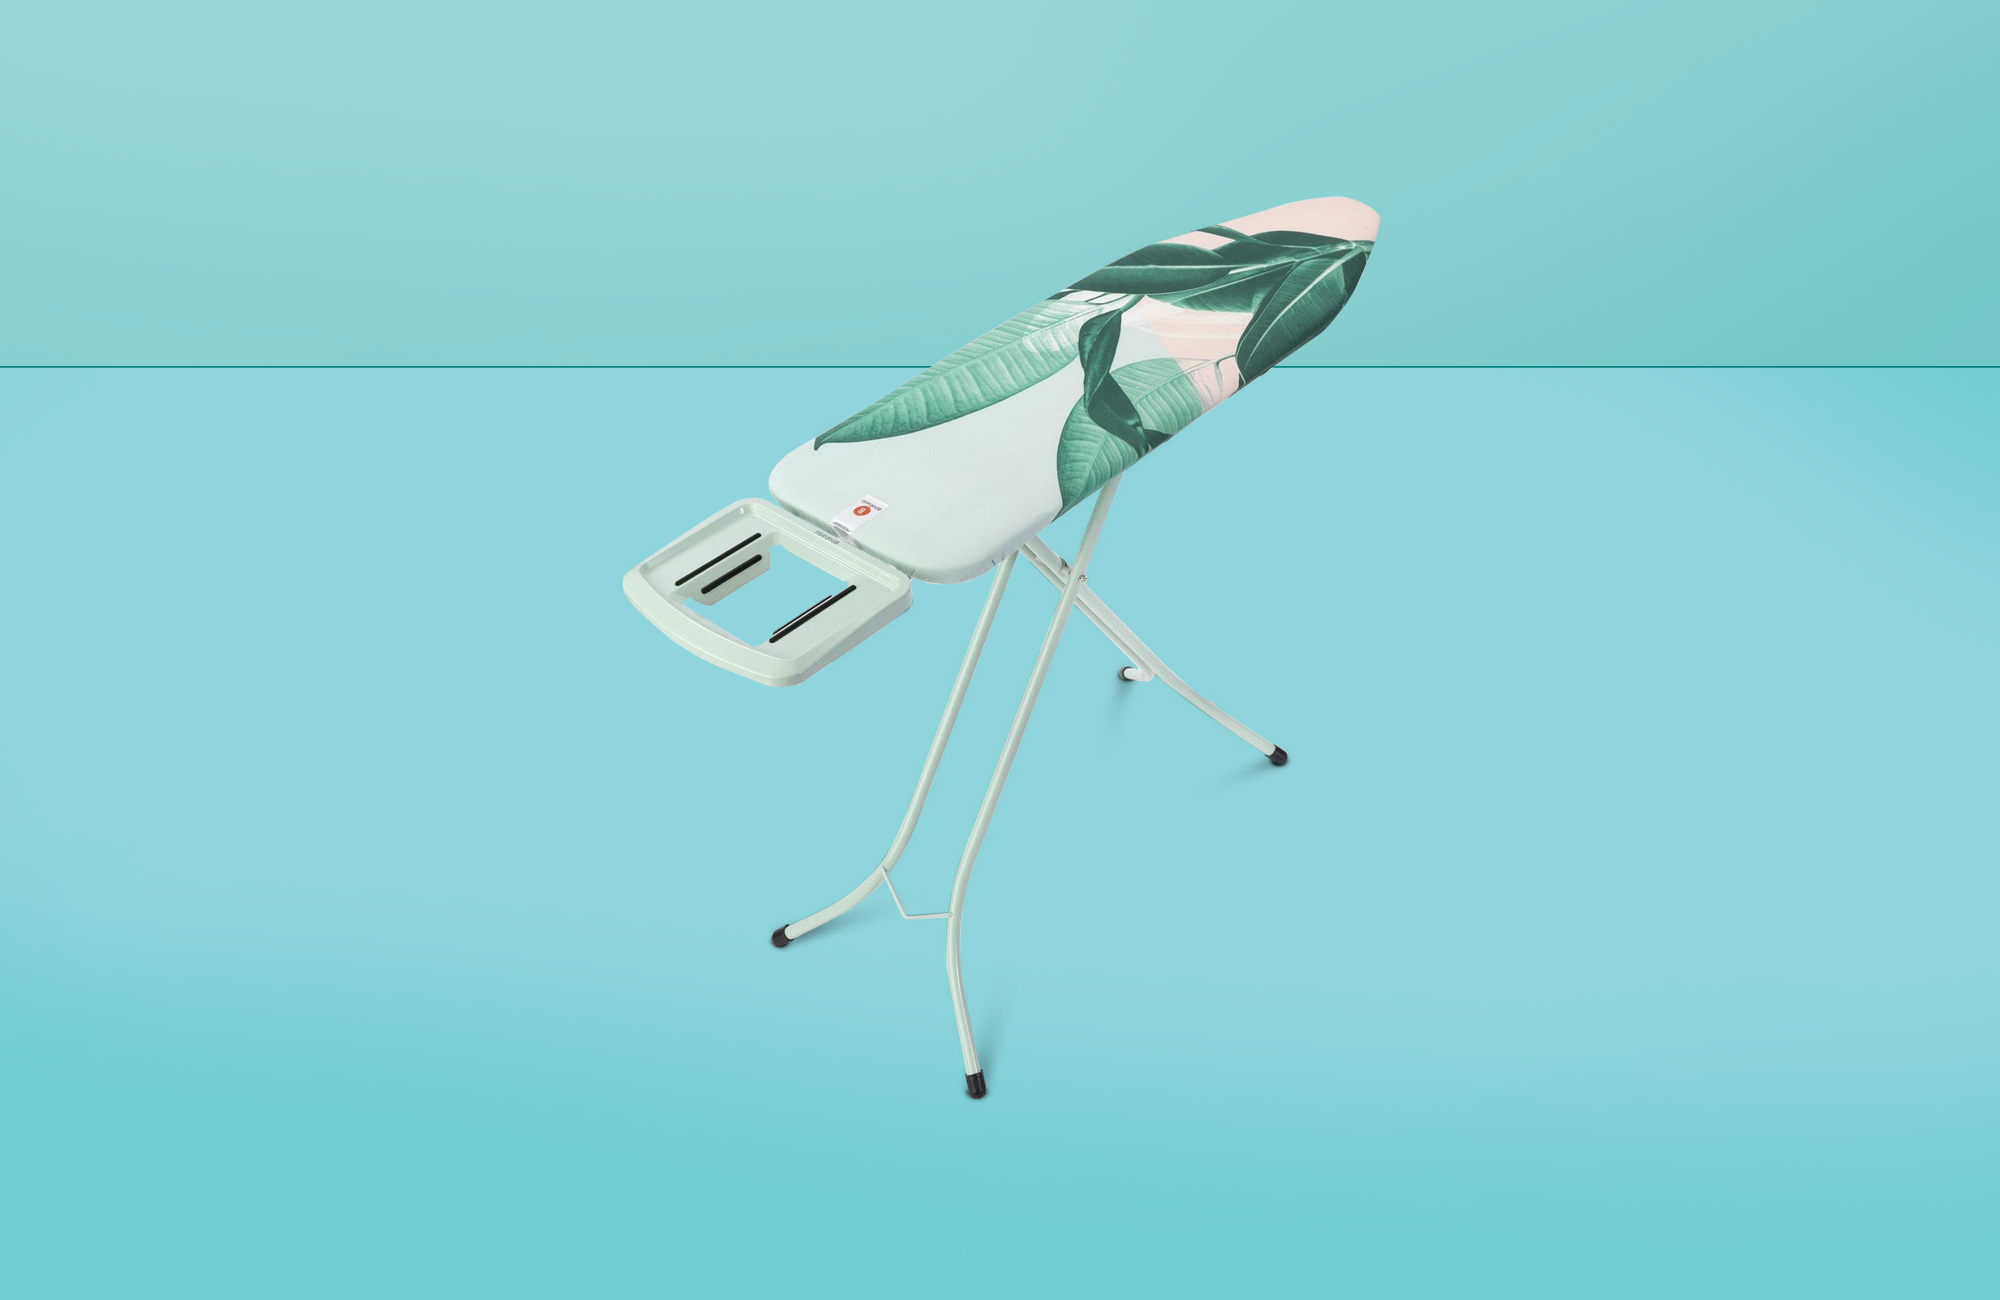 10 Best Ironing Boards to Buy in 2021